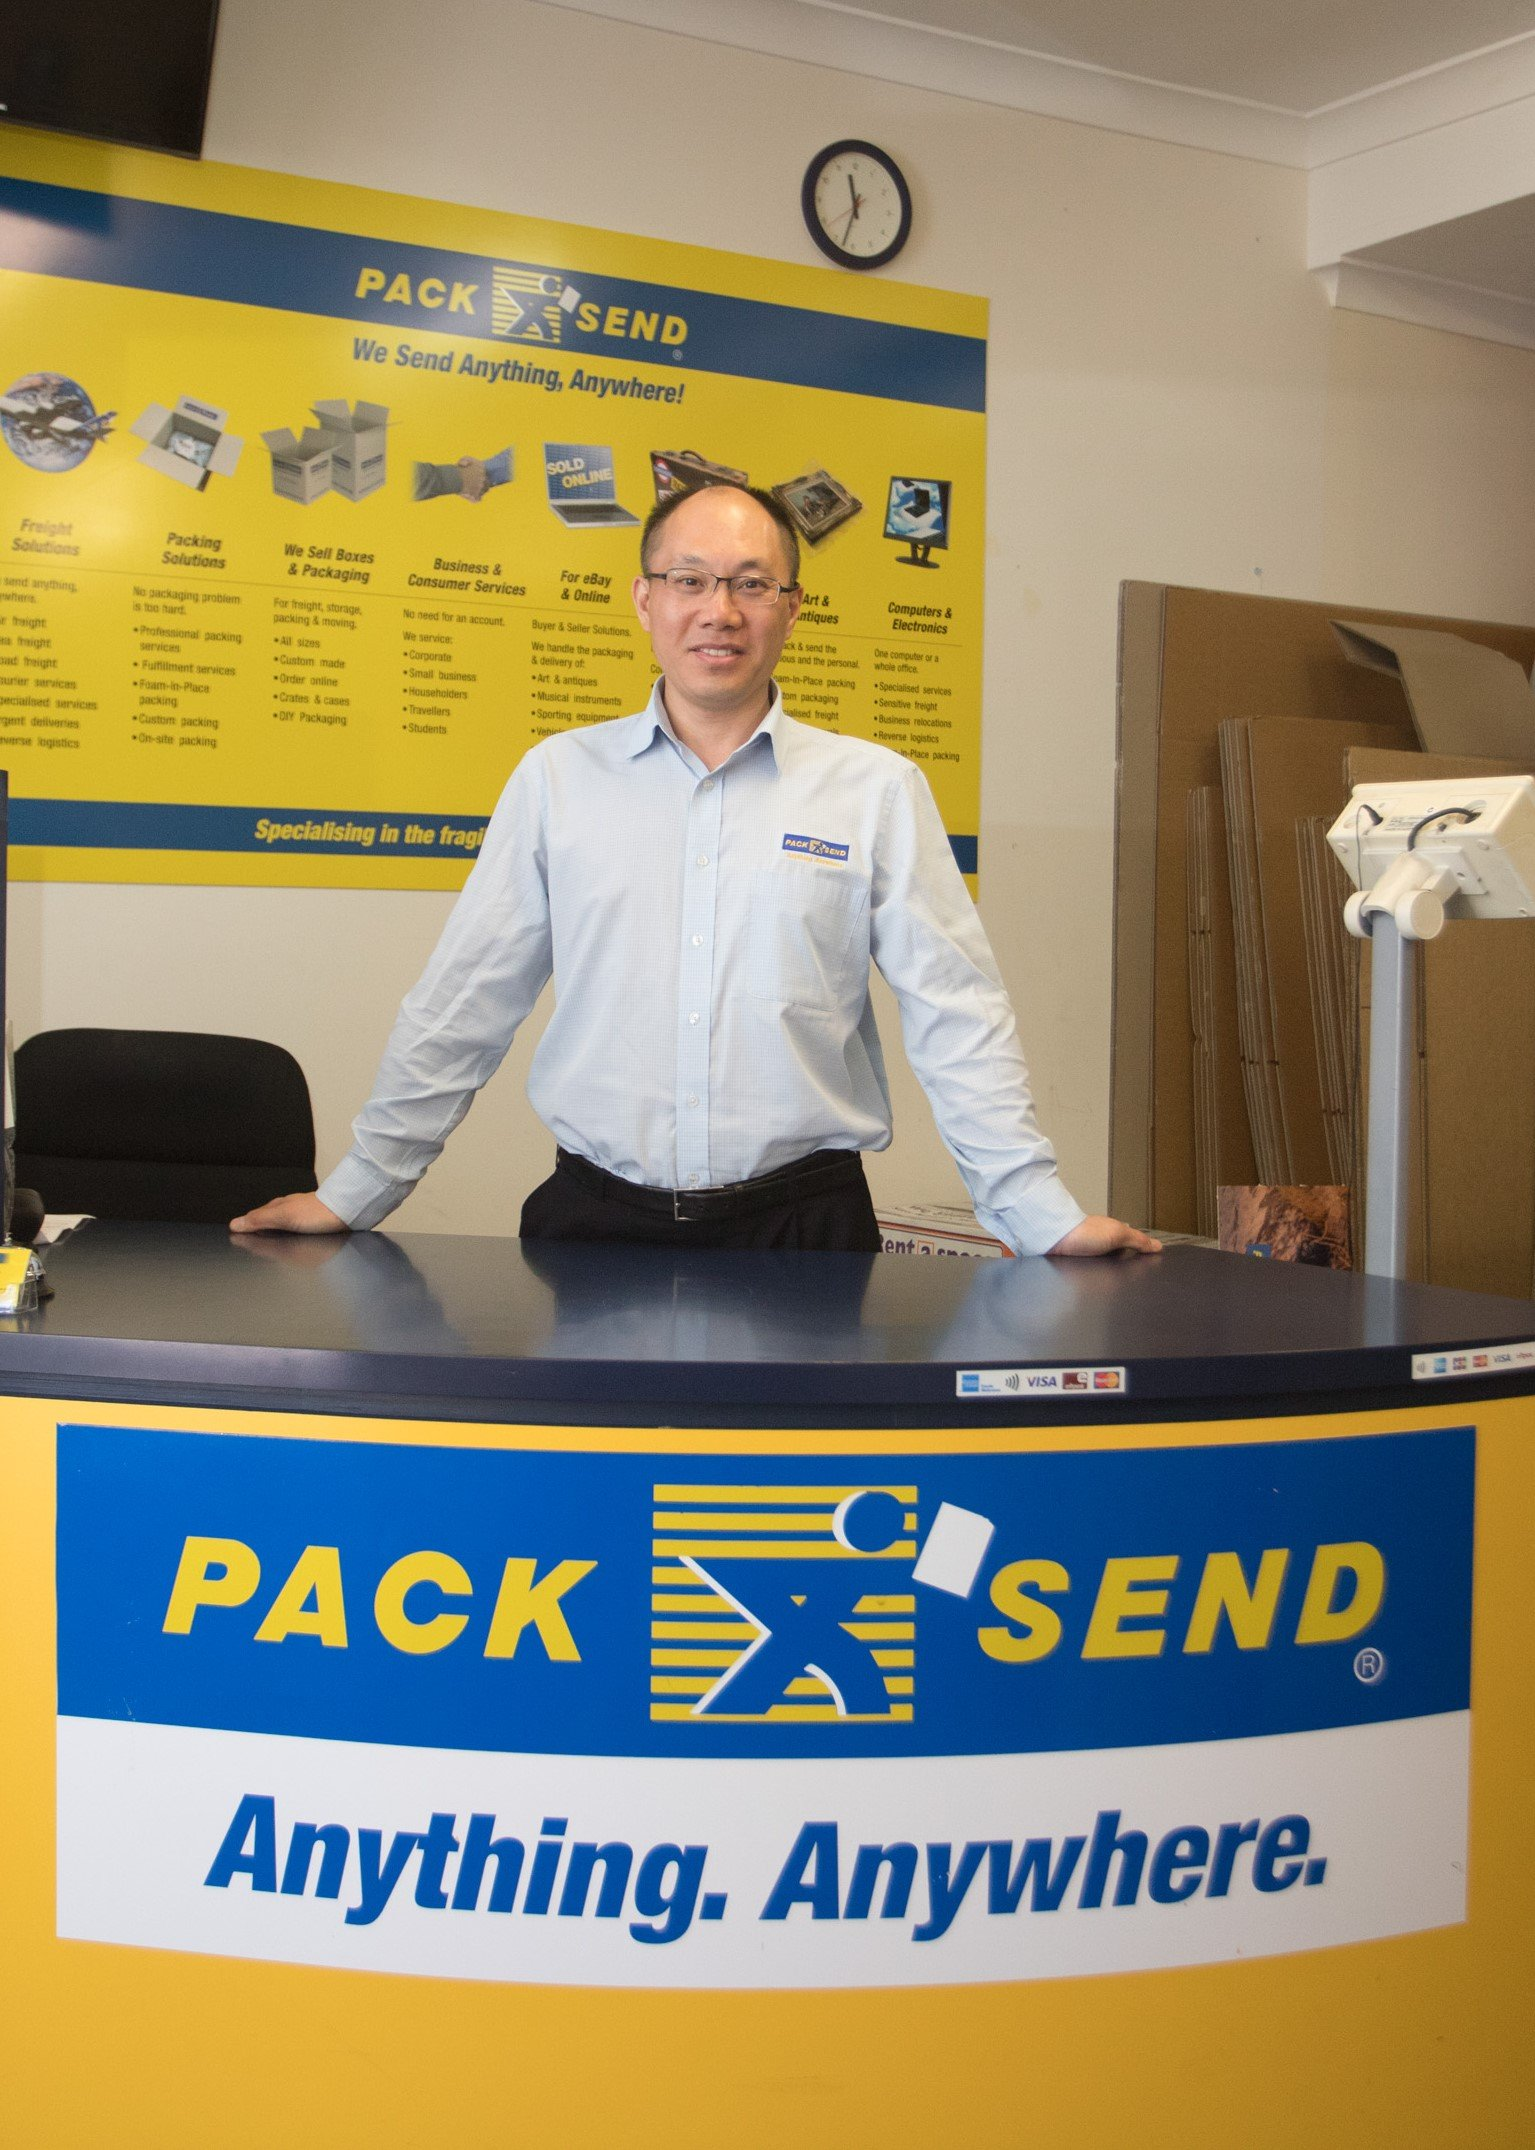 An interview with Hank Han of PACK & SEND Mascot